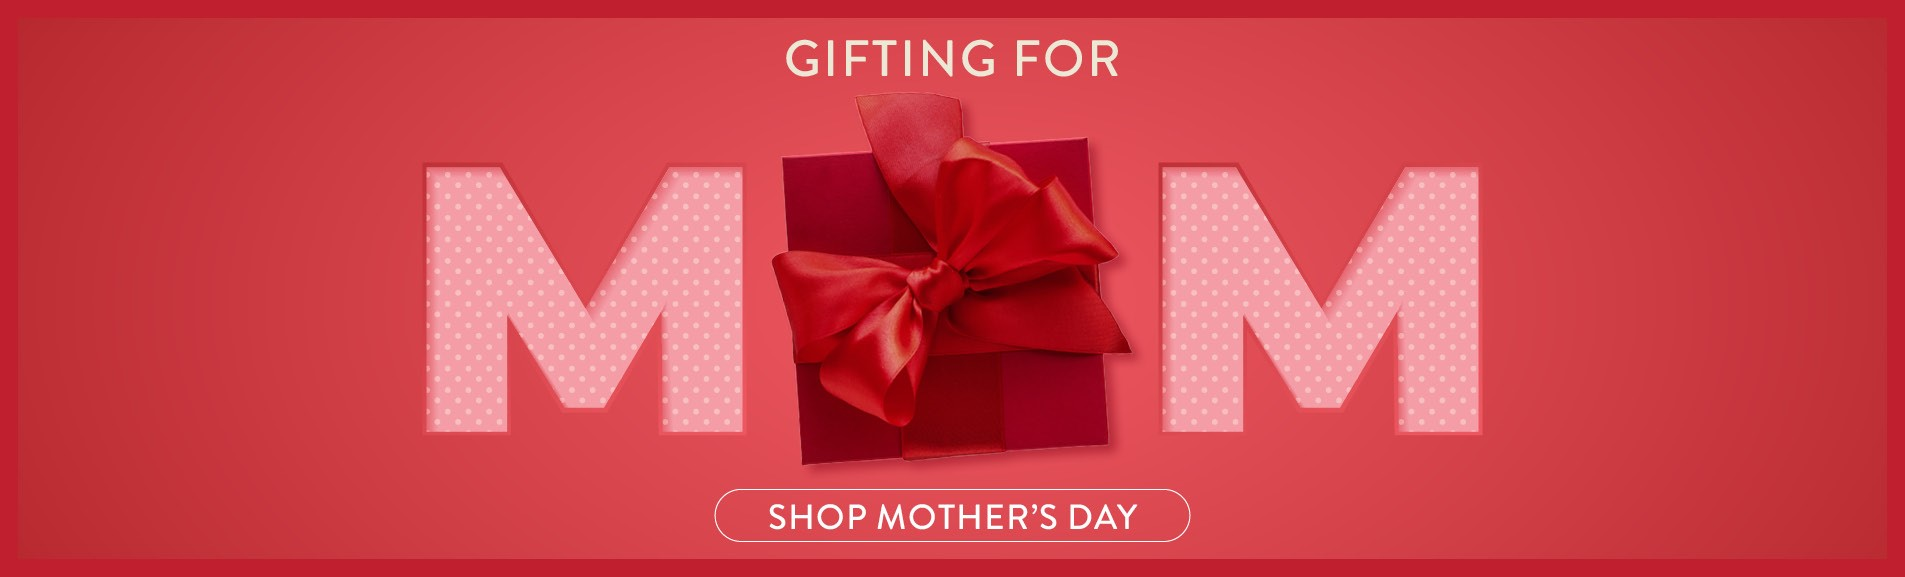 Weir & Sons Mother's Day Gifts